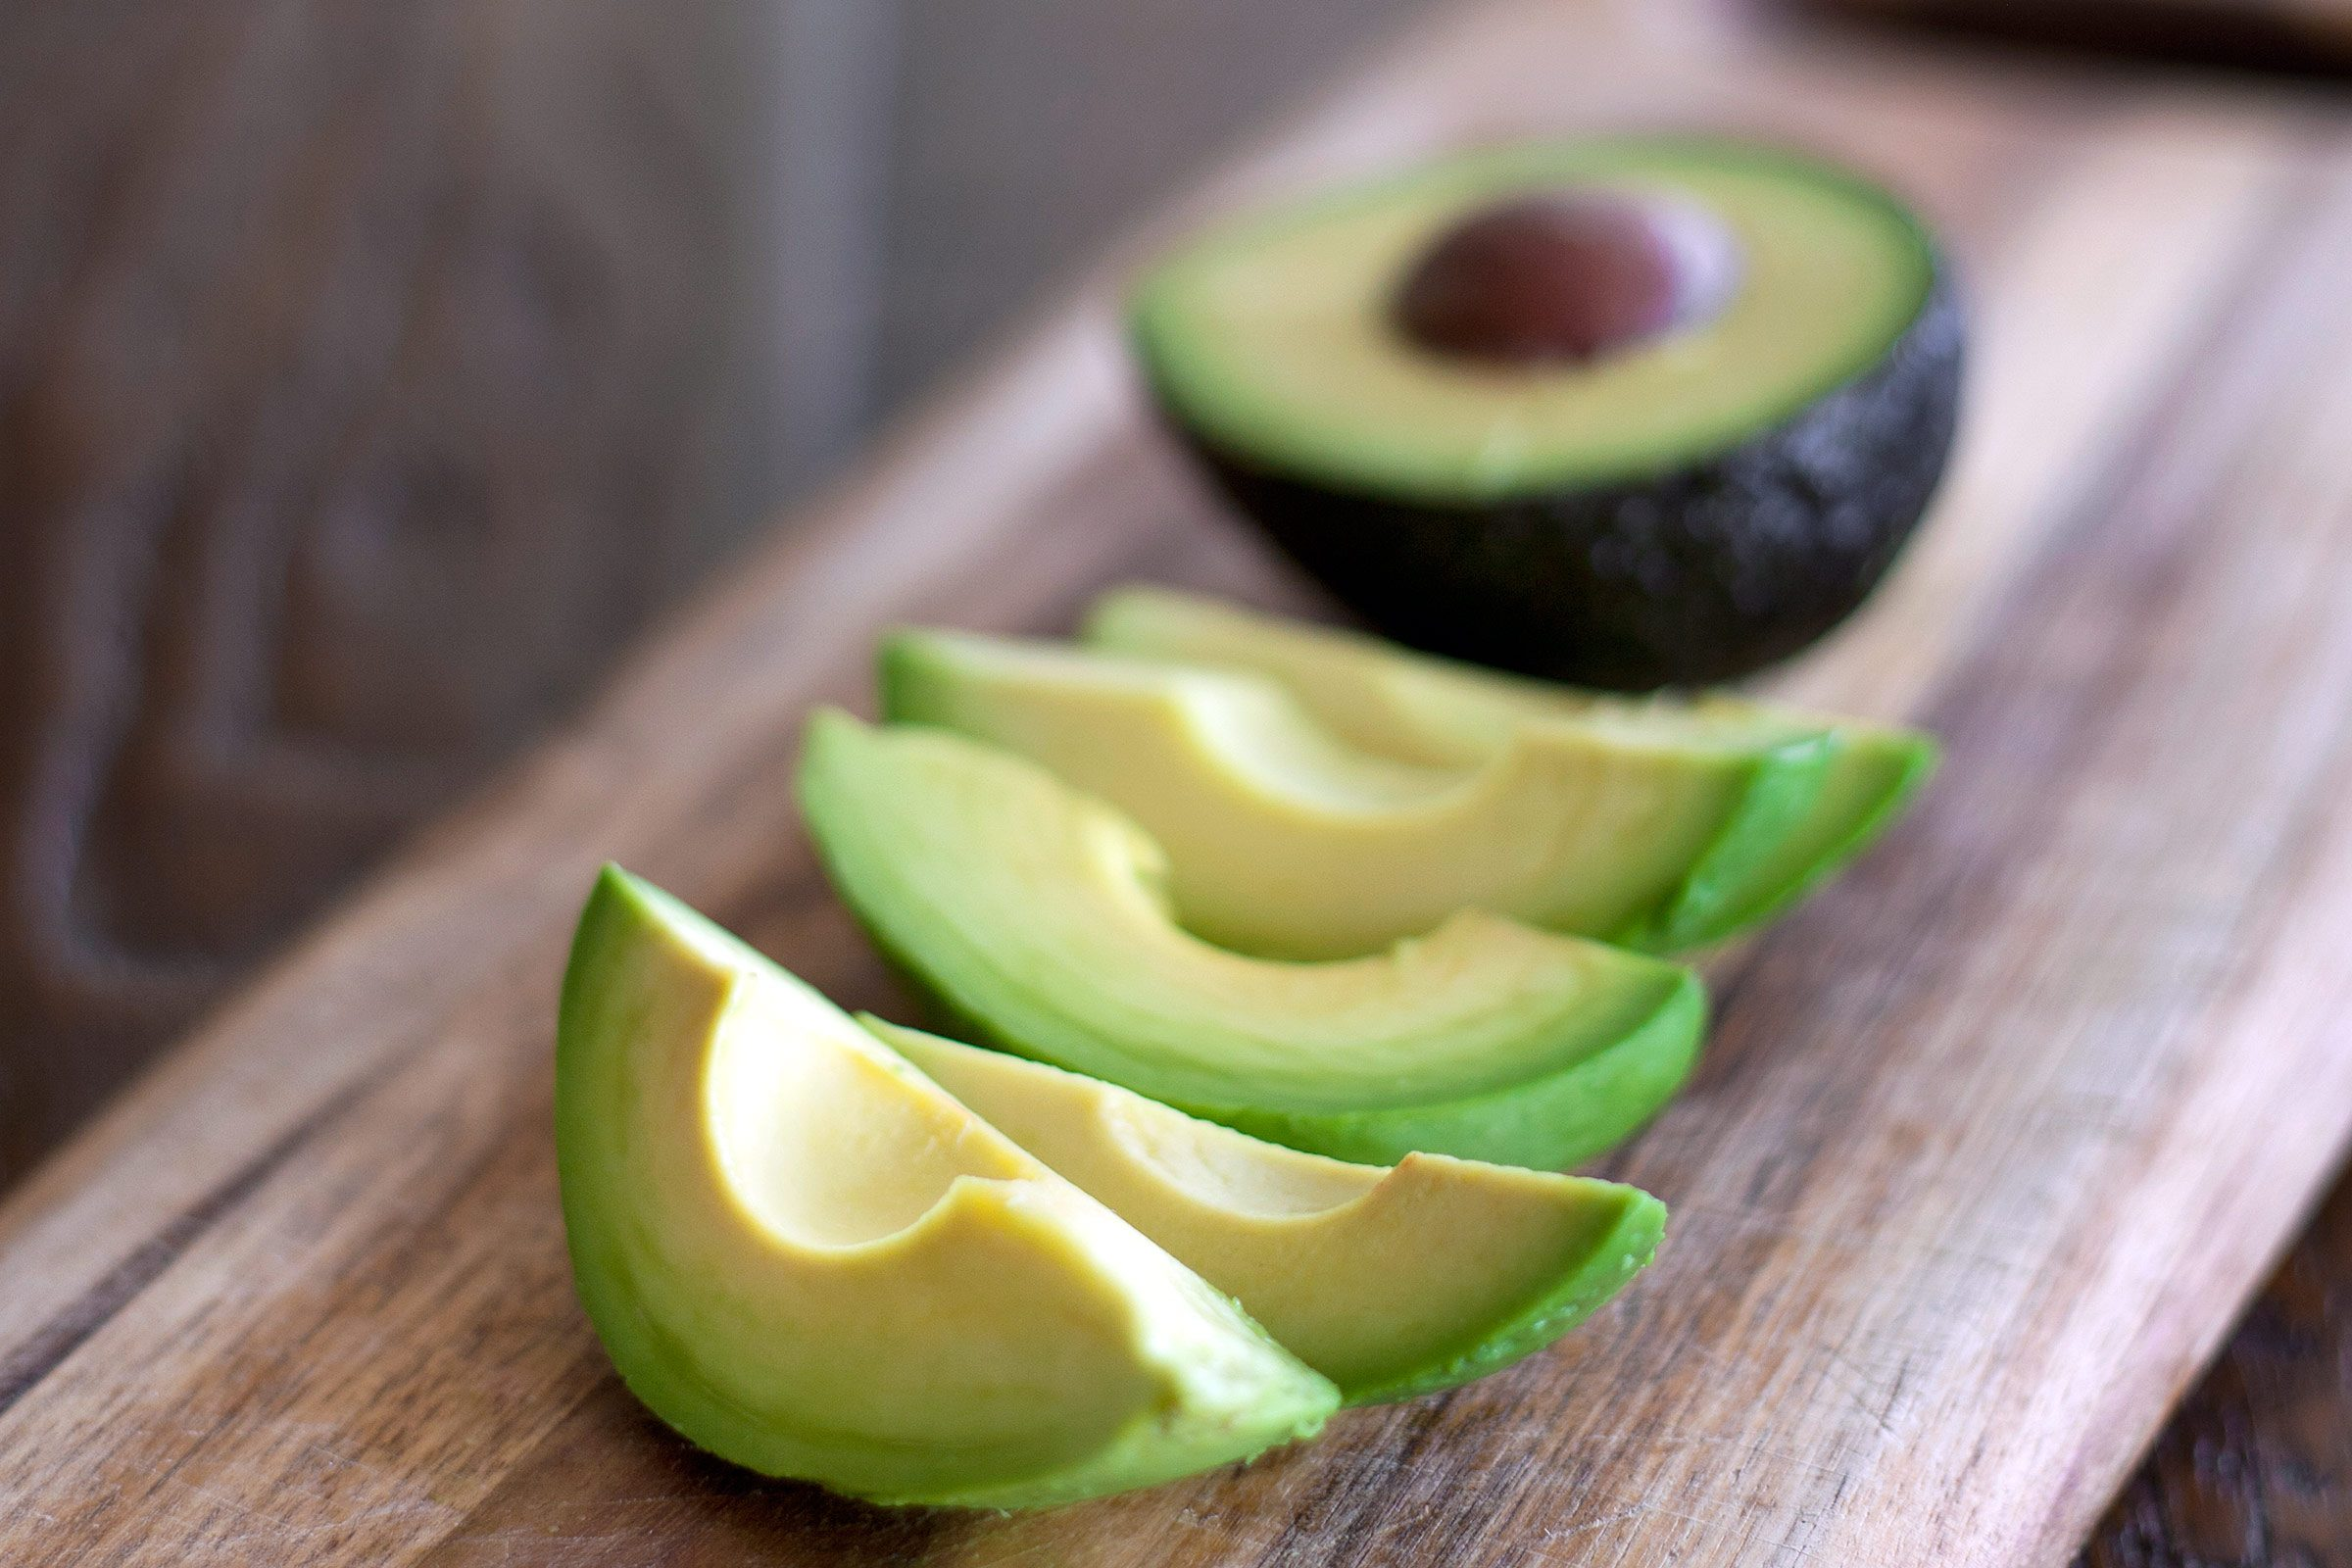 Avocado lowers cancer risk.